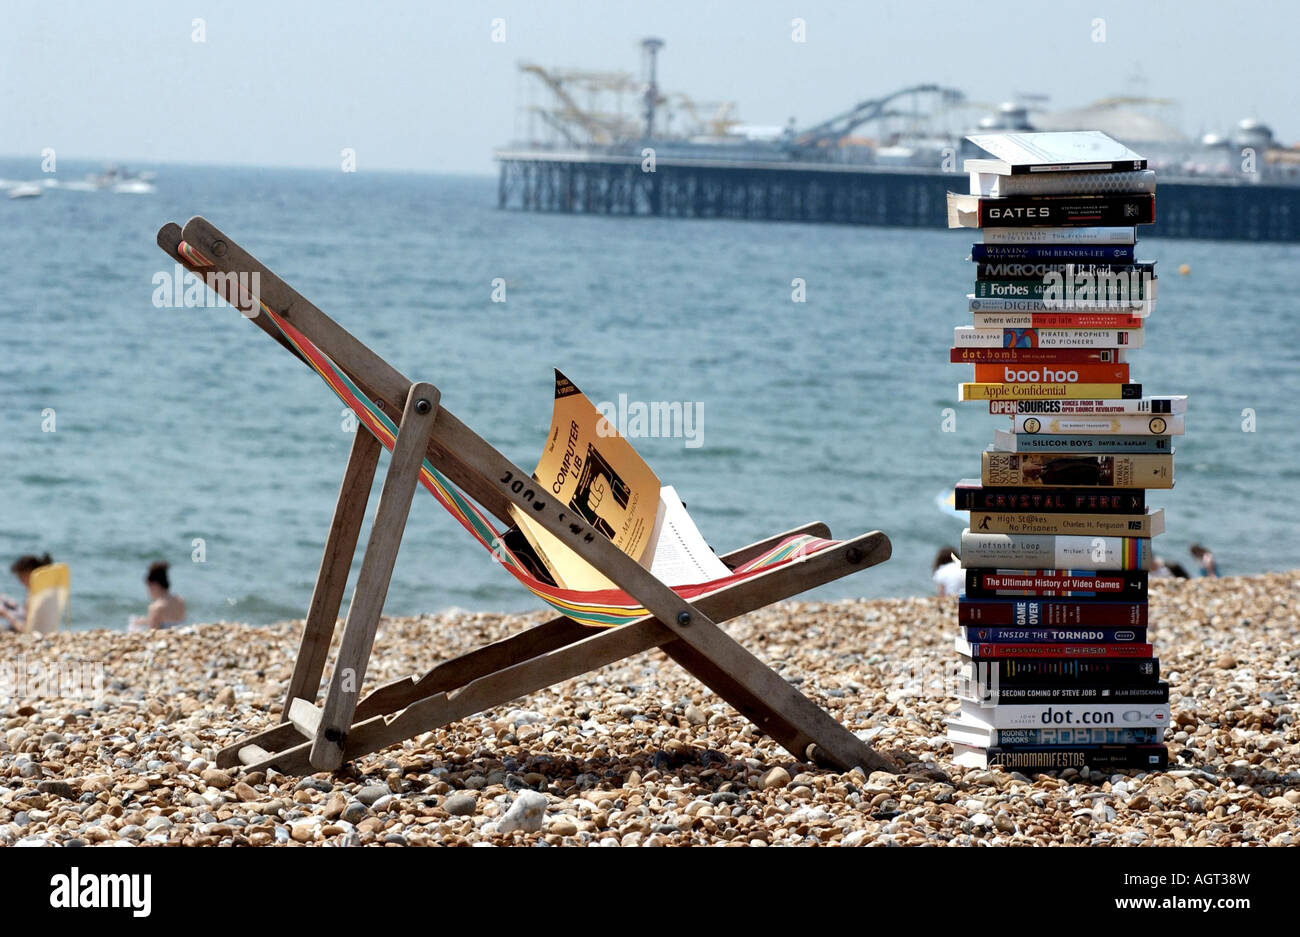 Serious summer reading. A stack of technical books on a deckchair on Brighton beach with the Pier in the background - Stock Image